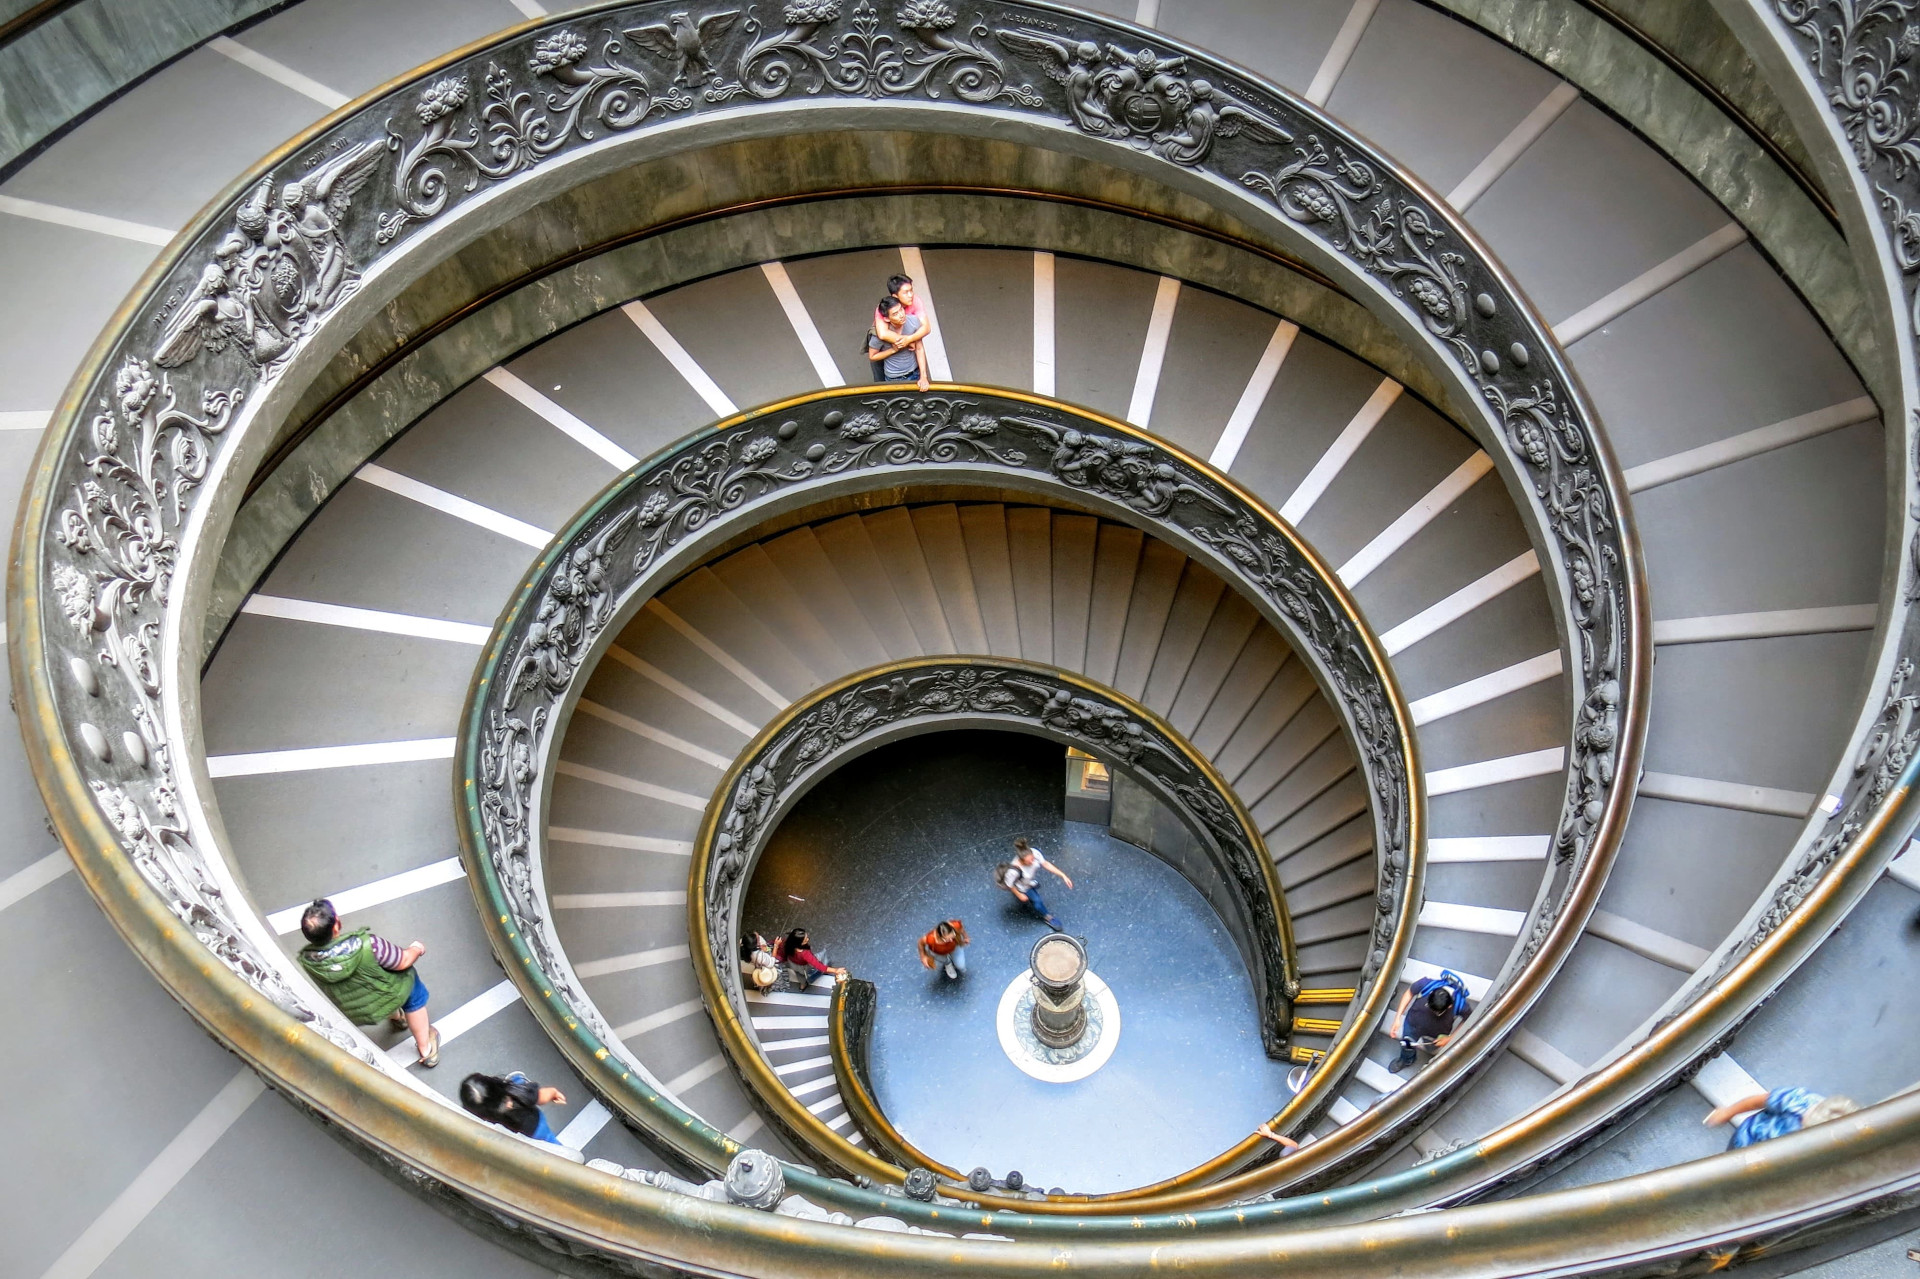 View on a rotunda, a great example of accessibility for all